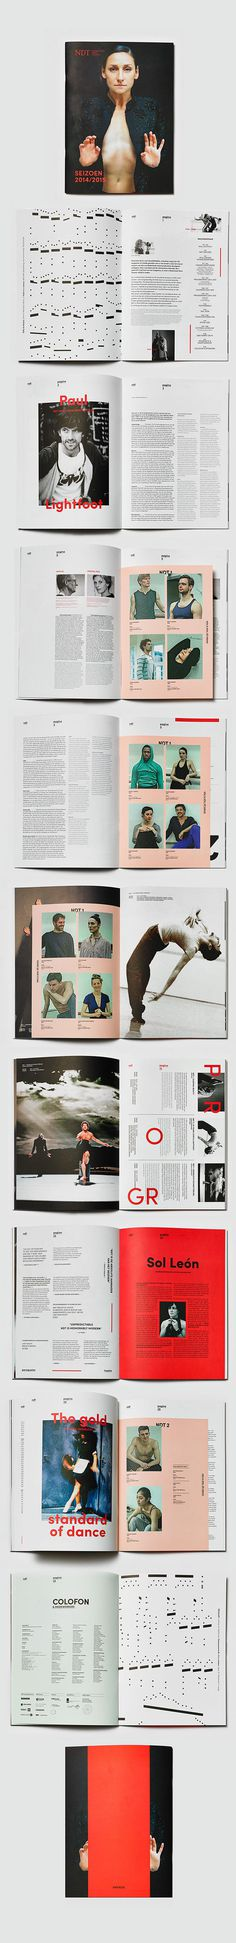 Nederlands Dans Theater on Behance